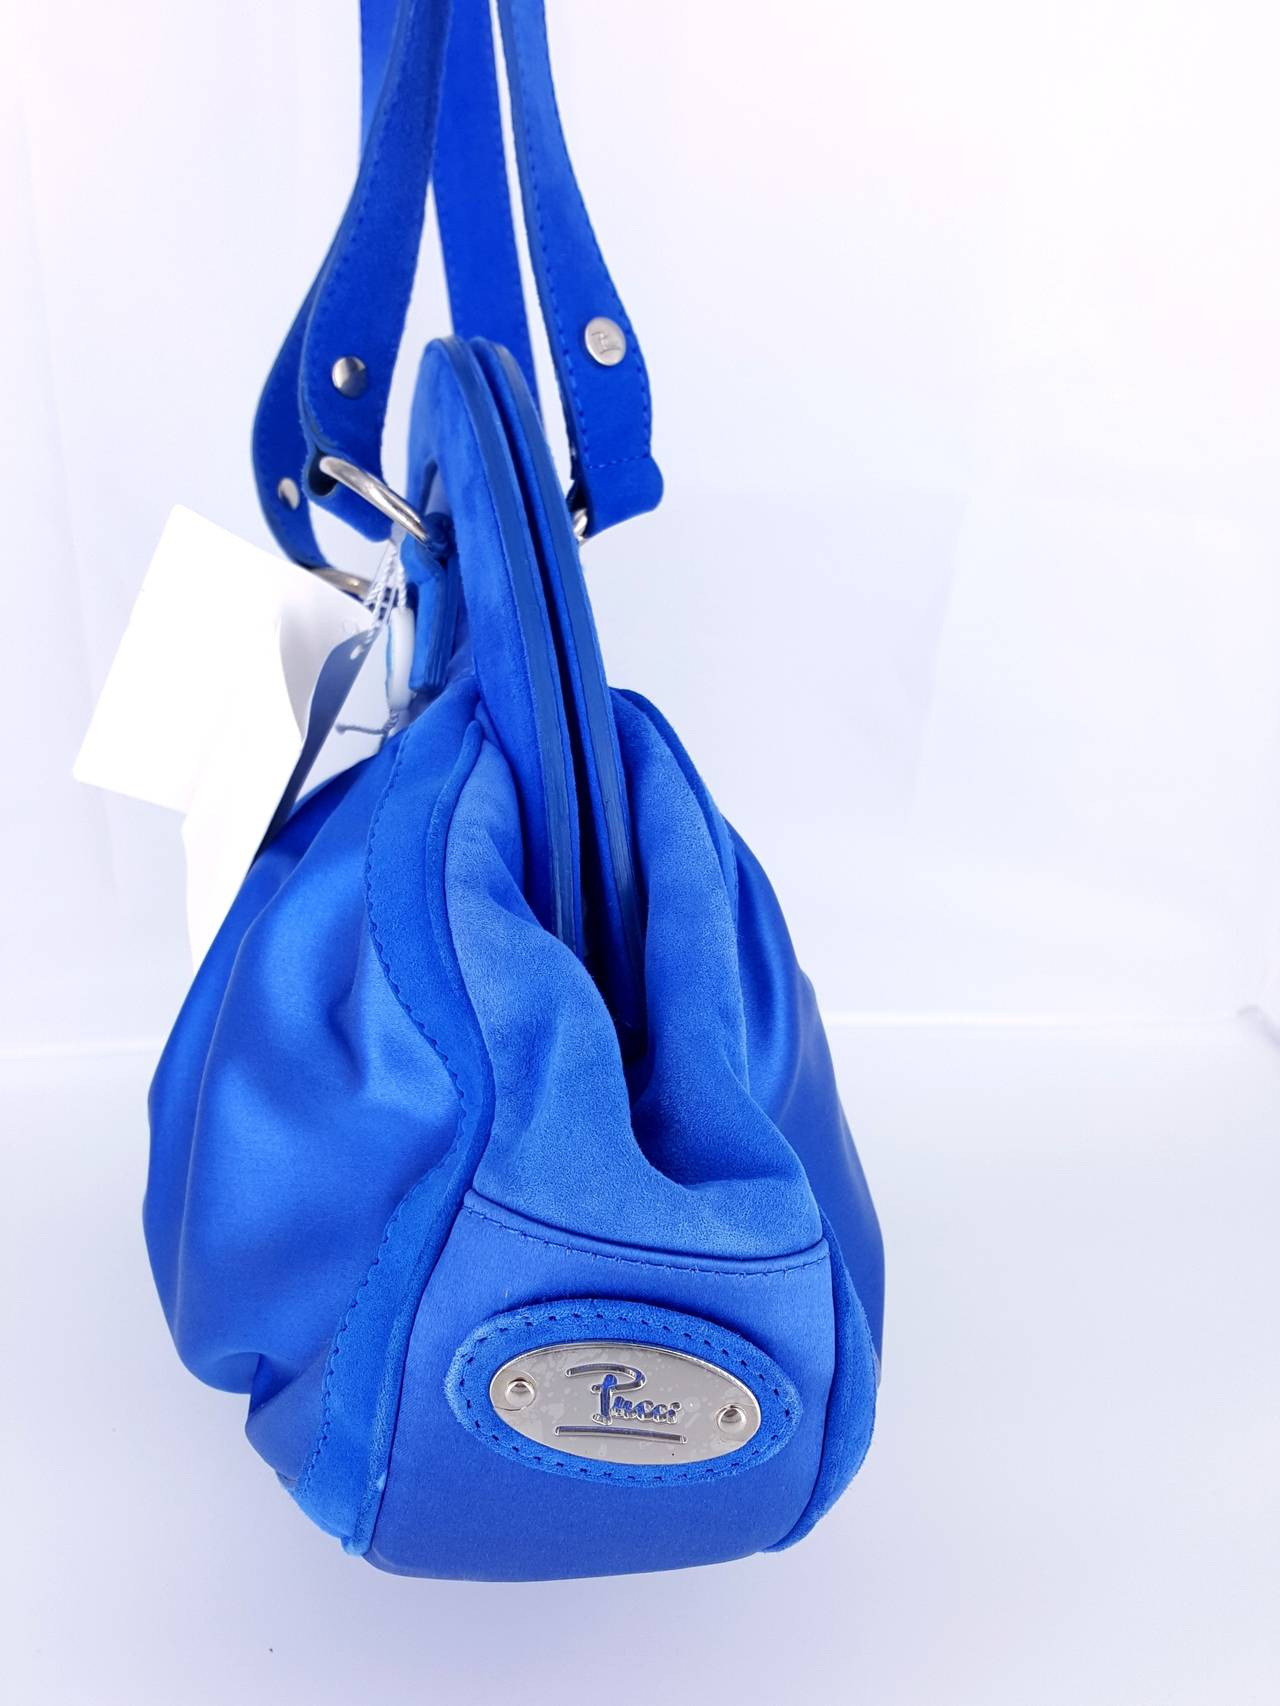 Pucci Cobalt Blue Satin And Suede Shoulder Bag - NWT  Great Color! In New Never_worn Condition For Sale In Delray Beach, FL